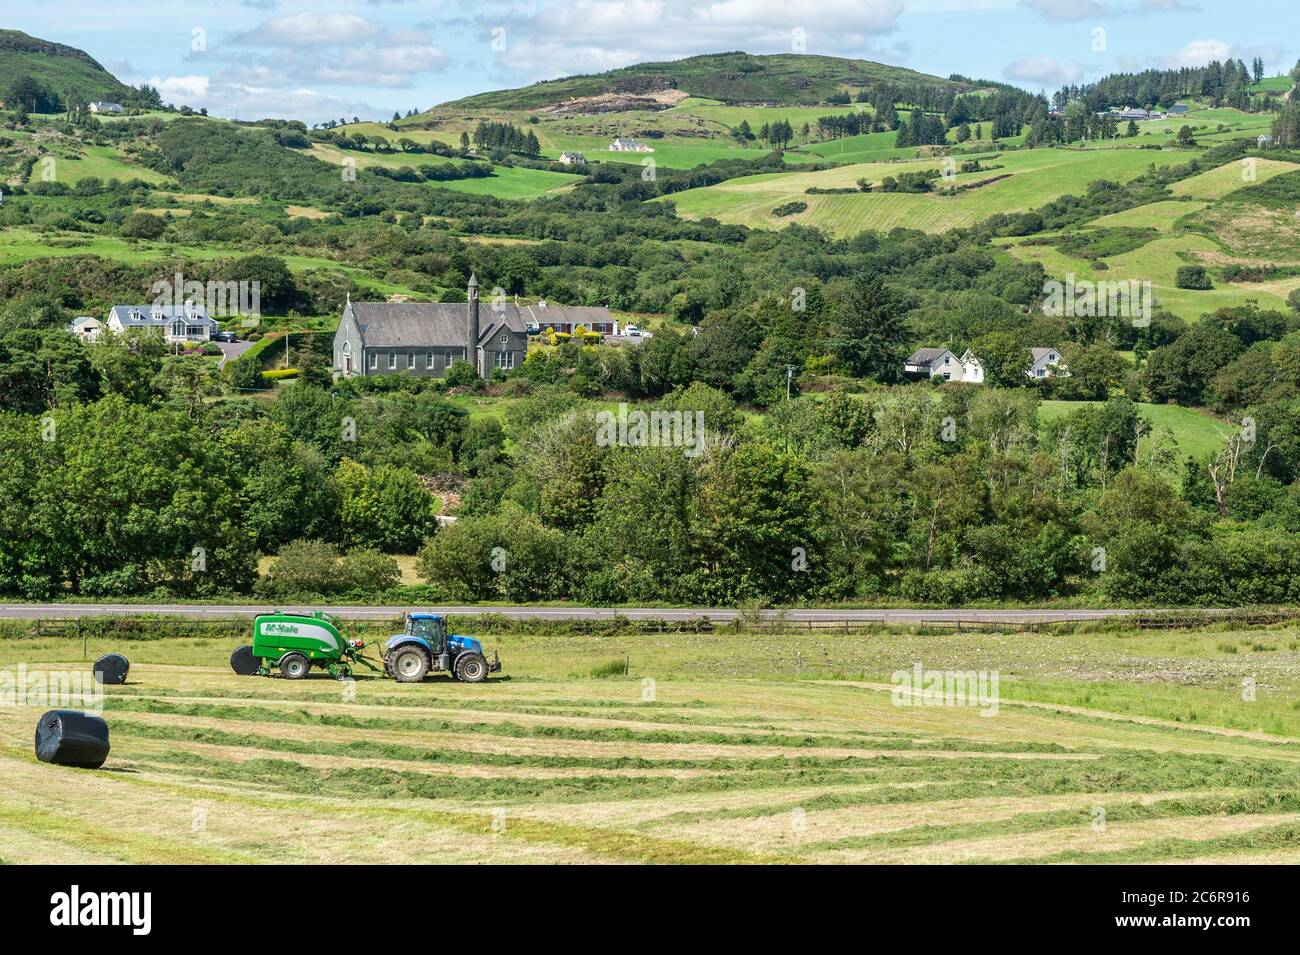 bantry-west-cork-ireland-11th-july-2020-on-a-hot-and-sunny-day-whooley-contractors-make-silage-on-the-farm-of-pat-cadogan-in-aughaville-near-bantry-using-a-new-holland-tractor-and-mchale-fusion-3-plus-baler-credit-ag-newsalamy-live-news-2C6R916.jpg